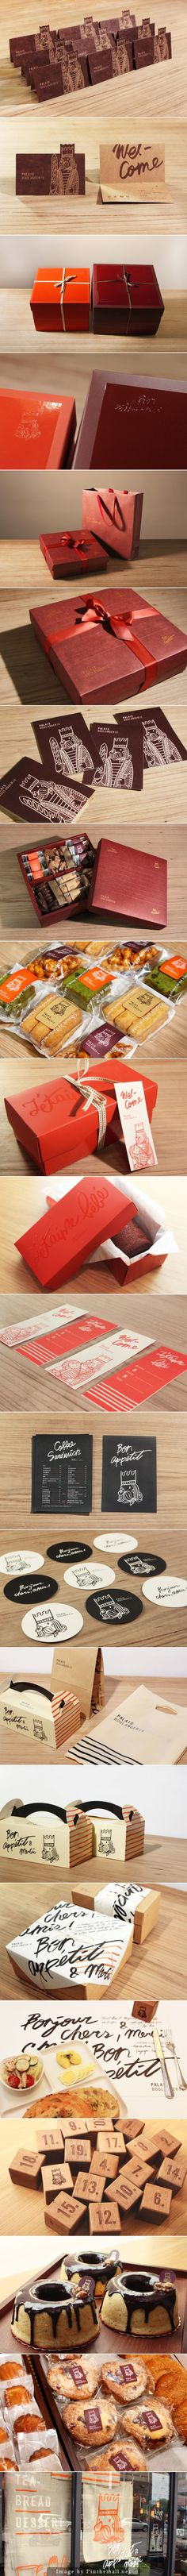 Palais Boulangerie this is awesome #branding #packaging unfortunately I cannot find the source. PD